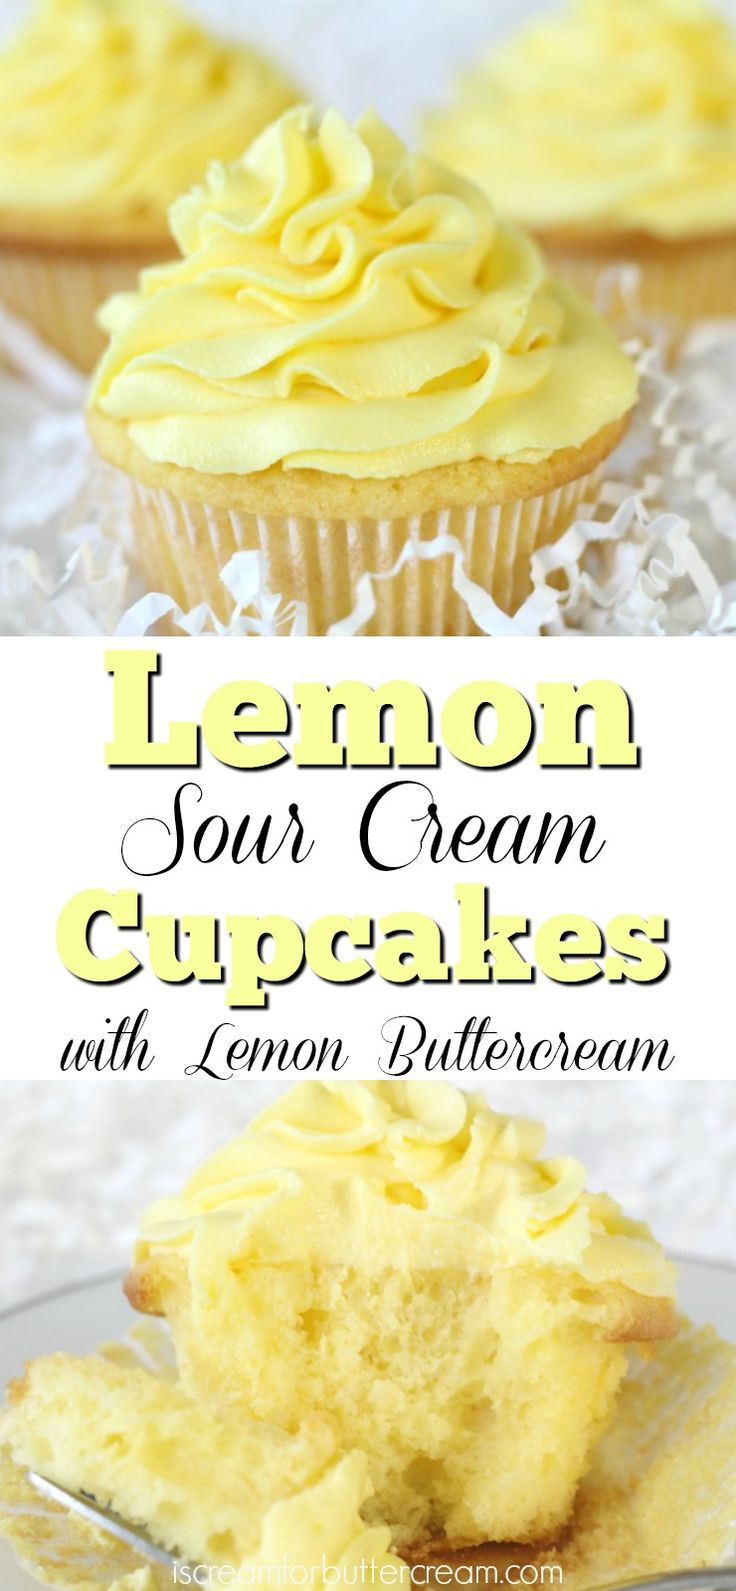 These lemon sour cream cupcakes have a moist, soft consistency, with just the right amount of lemon taste, then topped with buttercream that's packed full of lemon flavor.